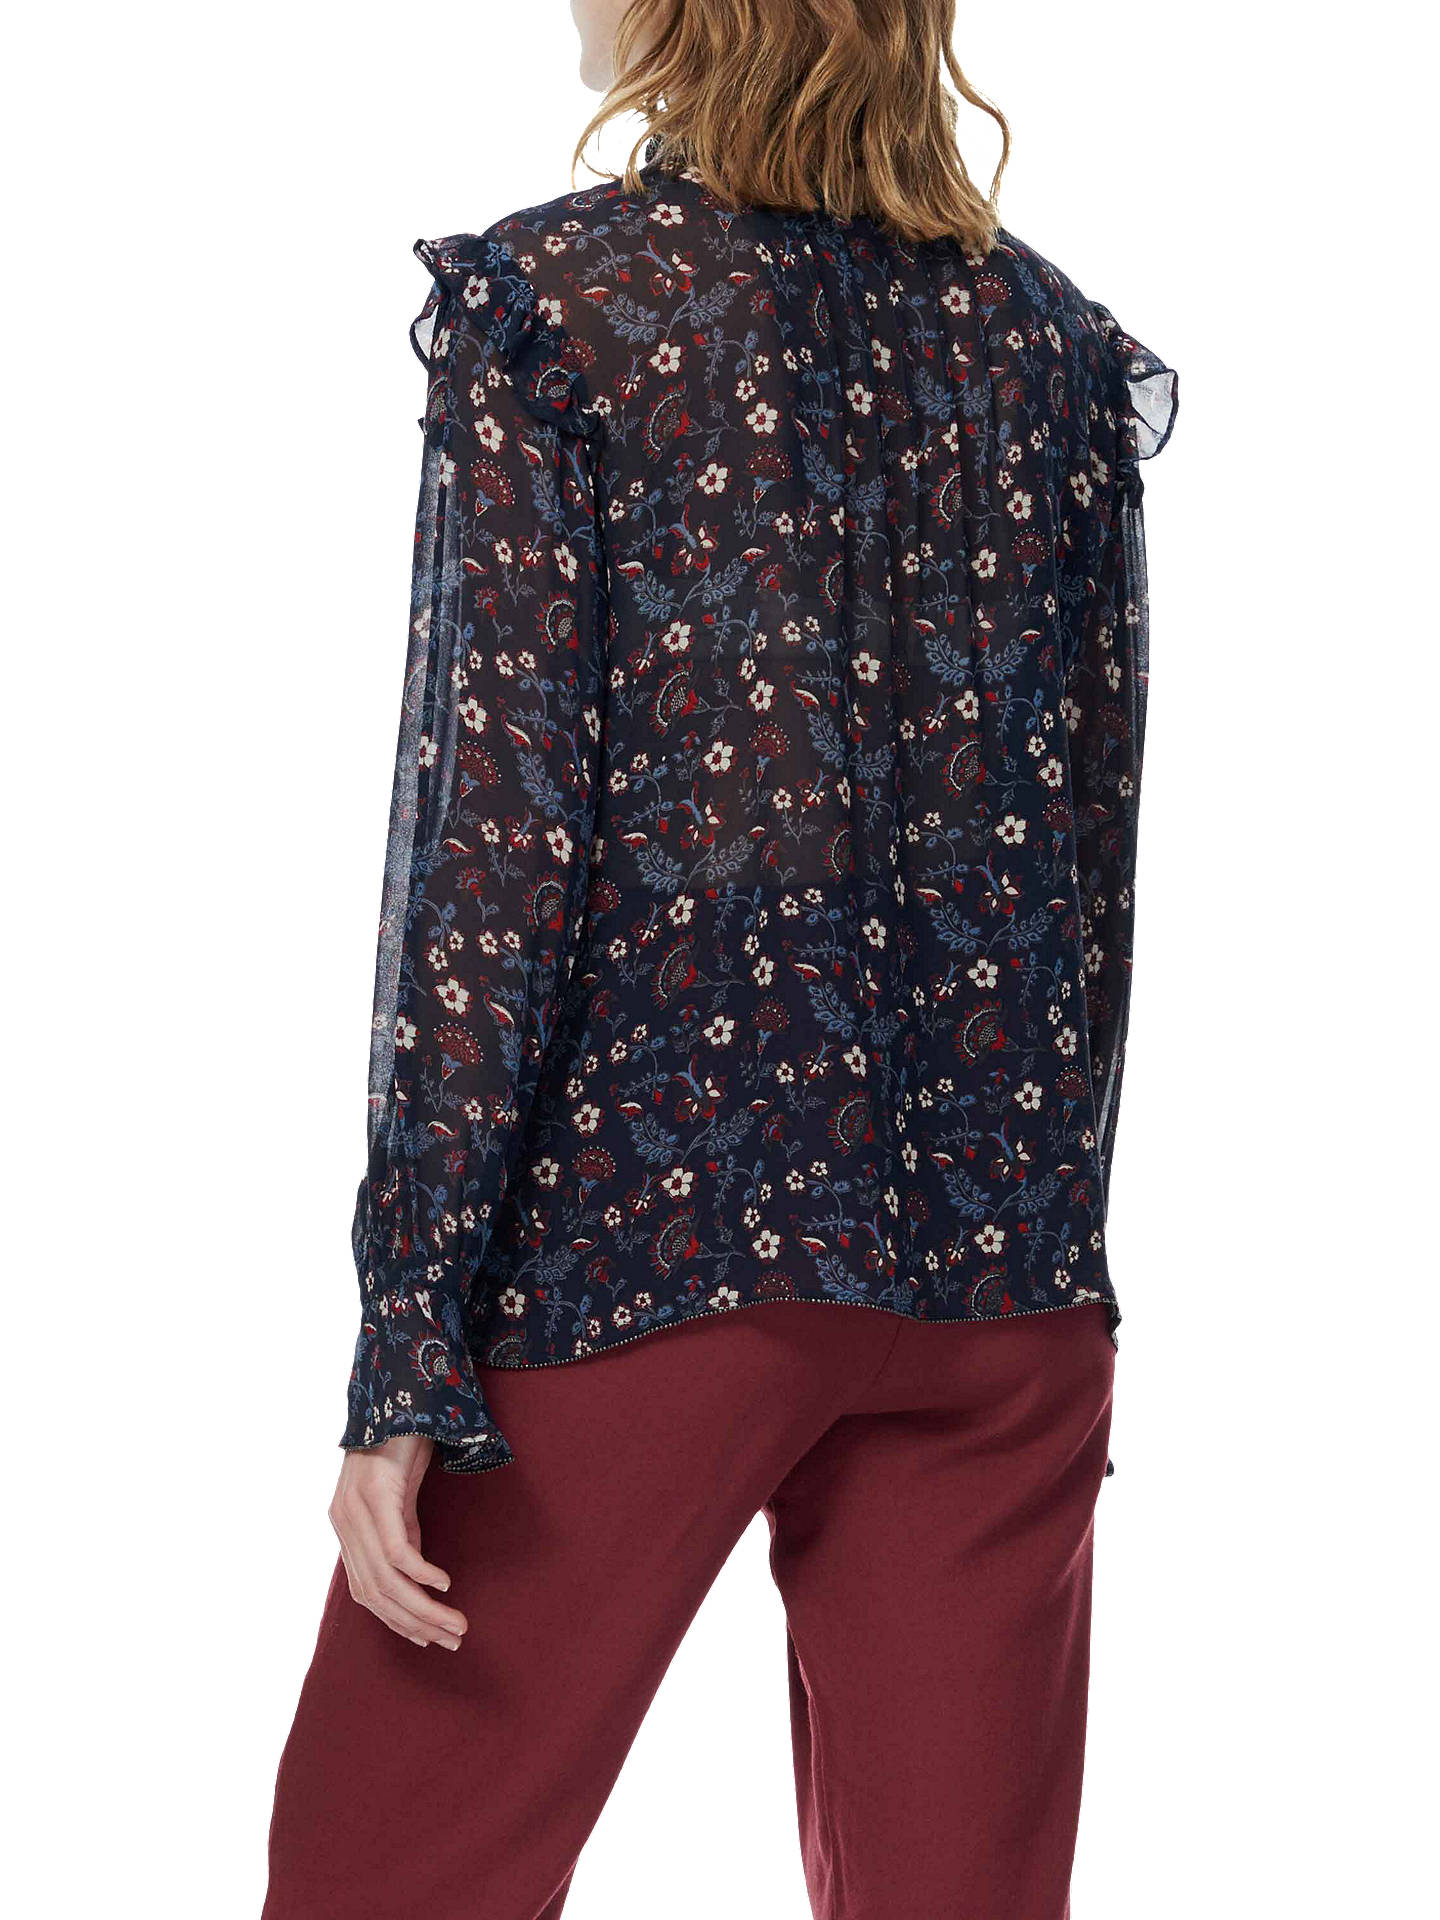 Buy Brora Floral Print Silk Blouse, Raven/Ruby, 6 Online at johnlewis.com